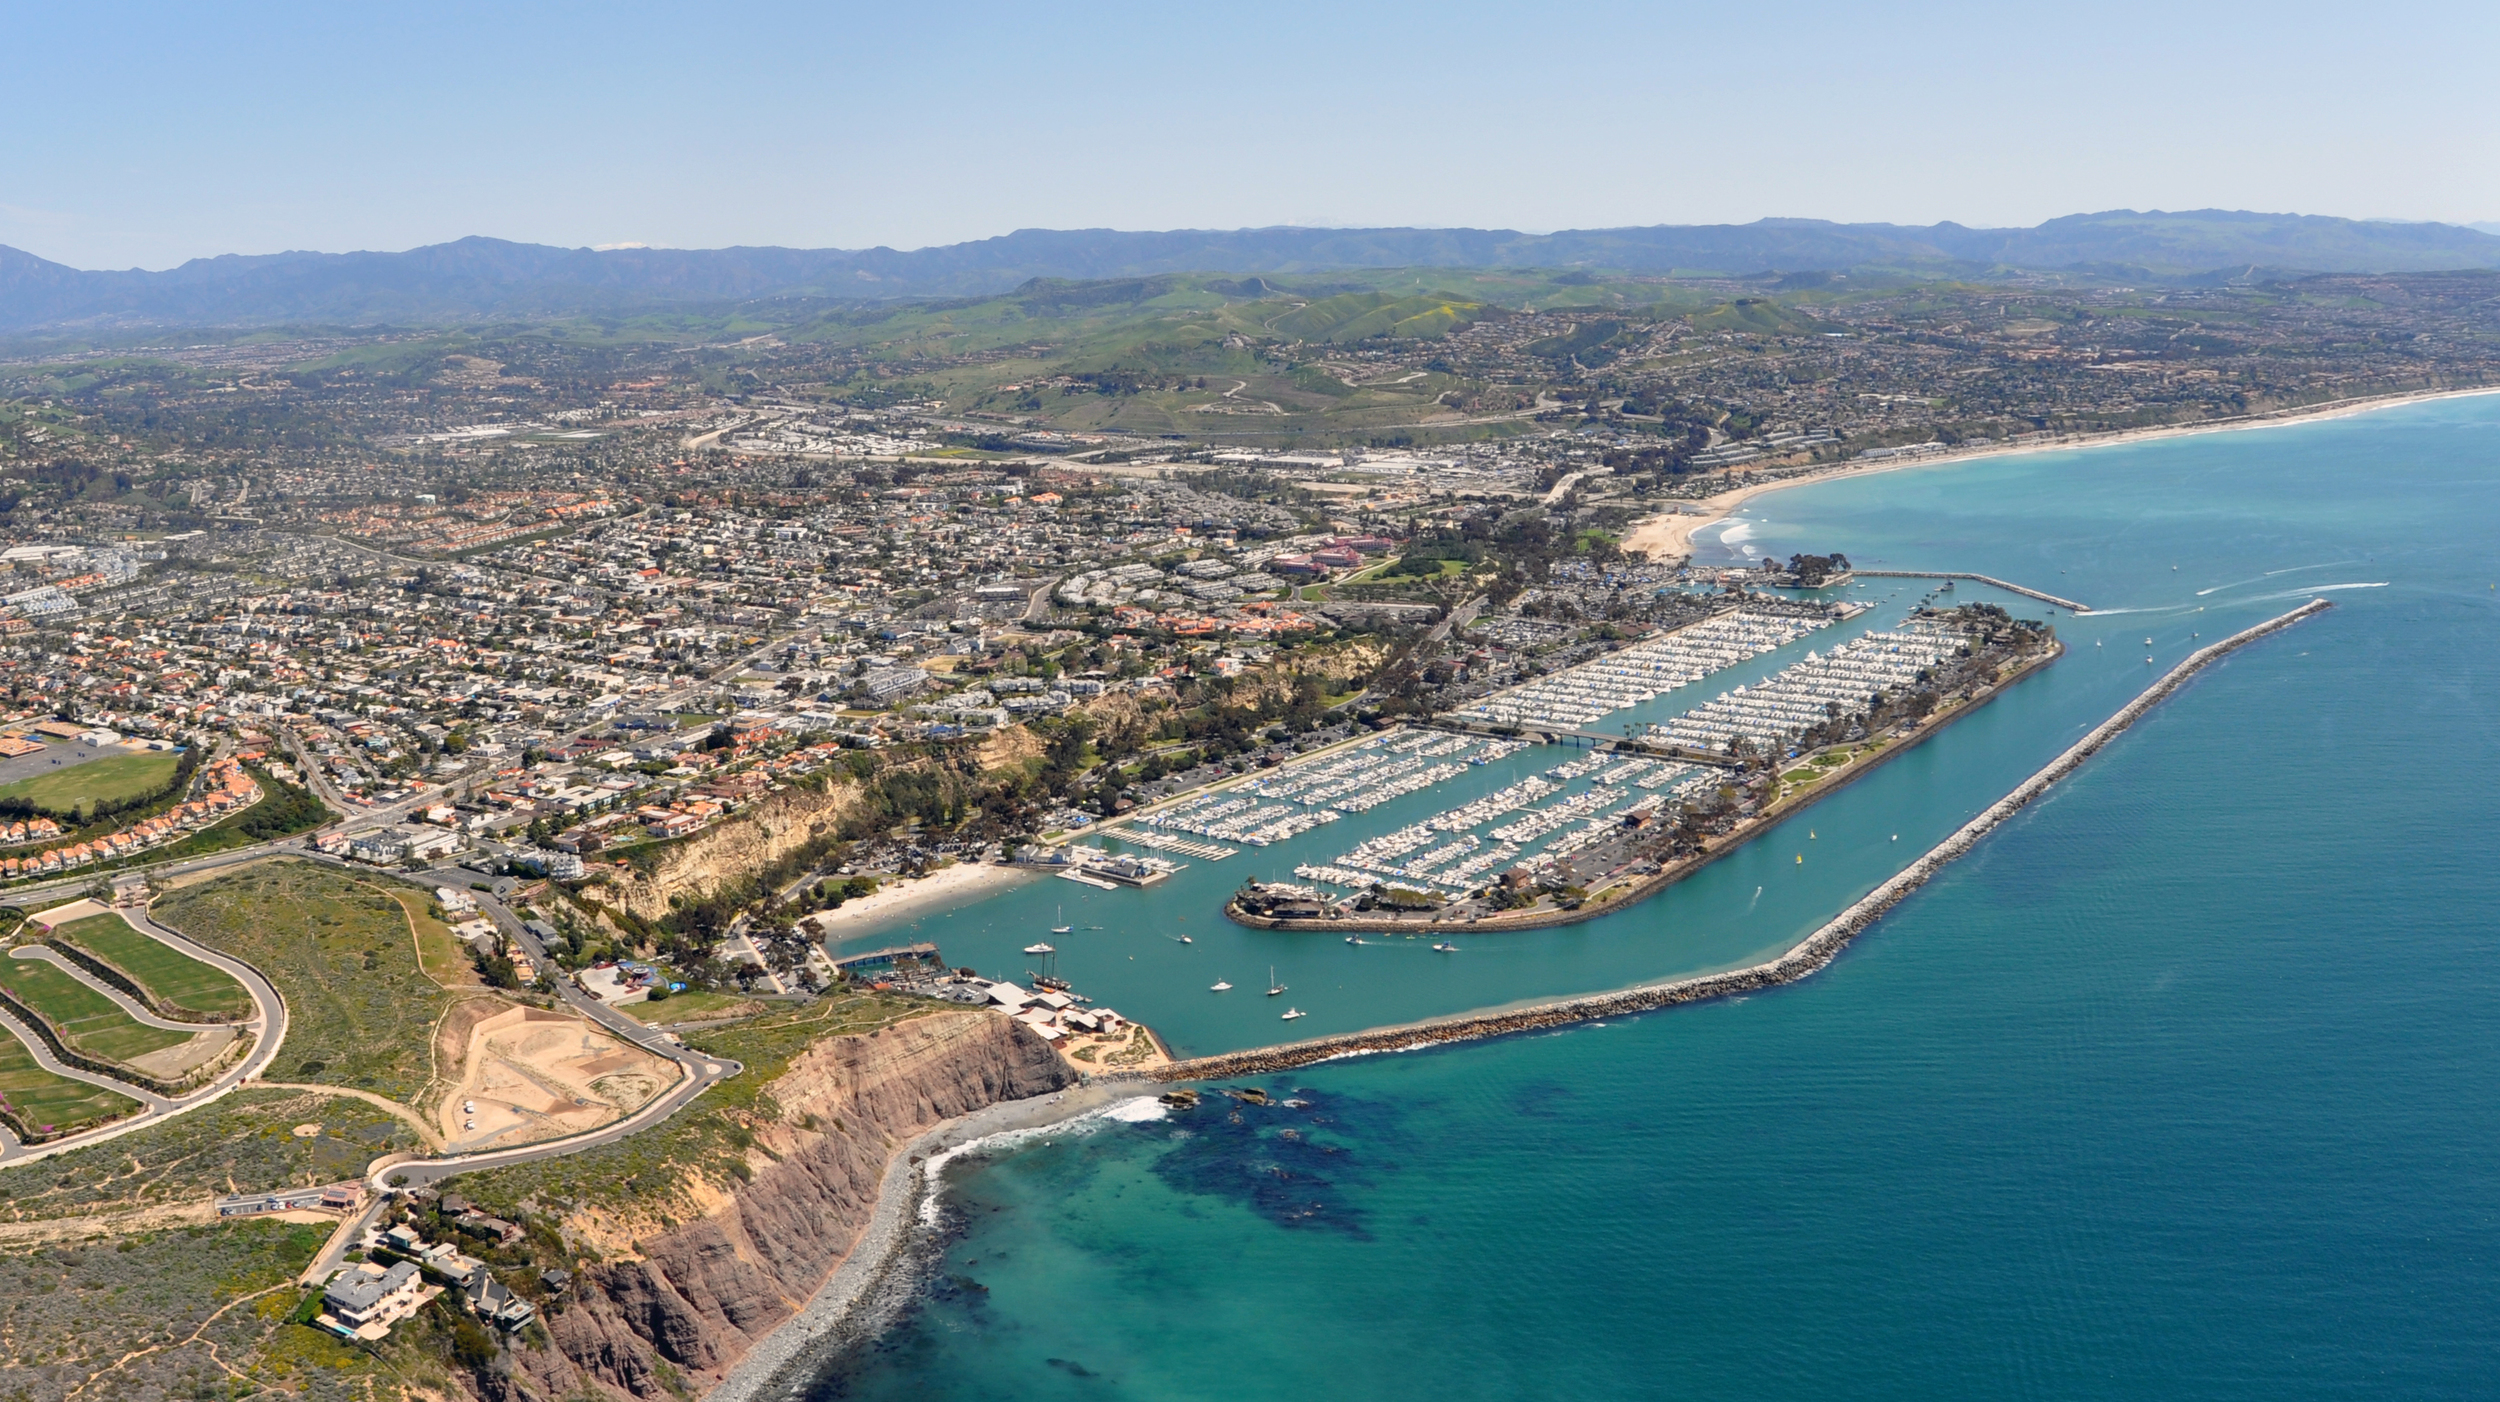 Dana_Point_a_city_in_southern_Orange_County_CA_Photo_D_Ramey_Logan.jpg